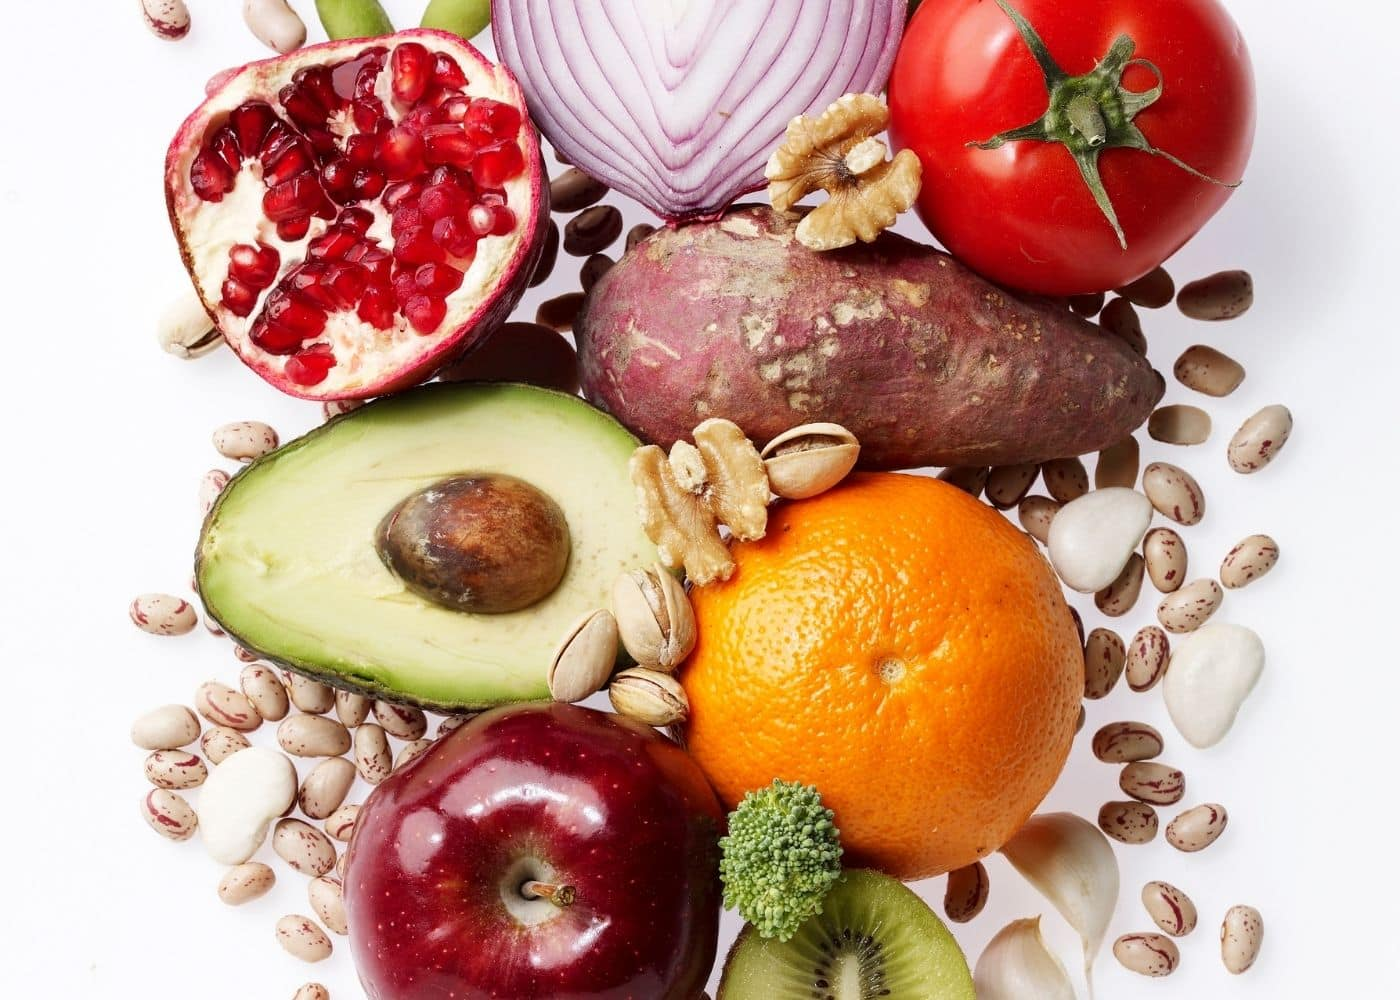 healthy foods on a white tabletop